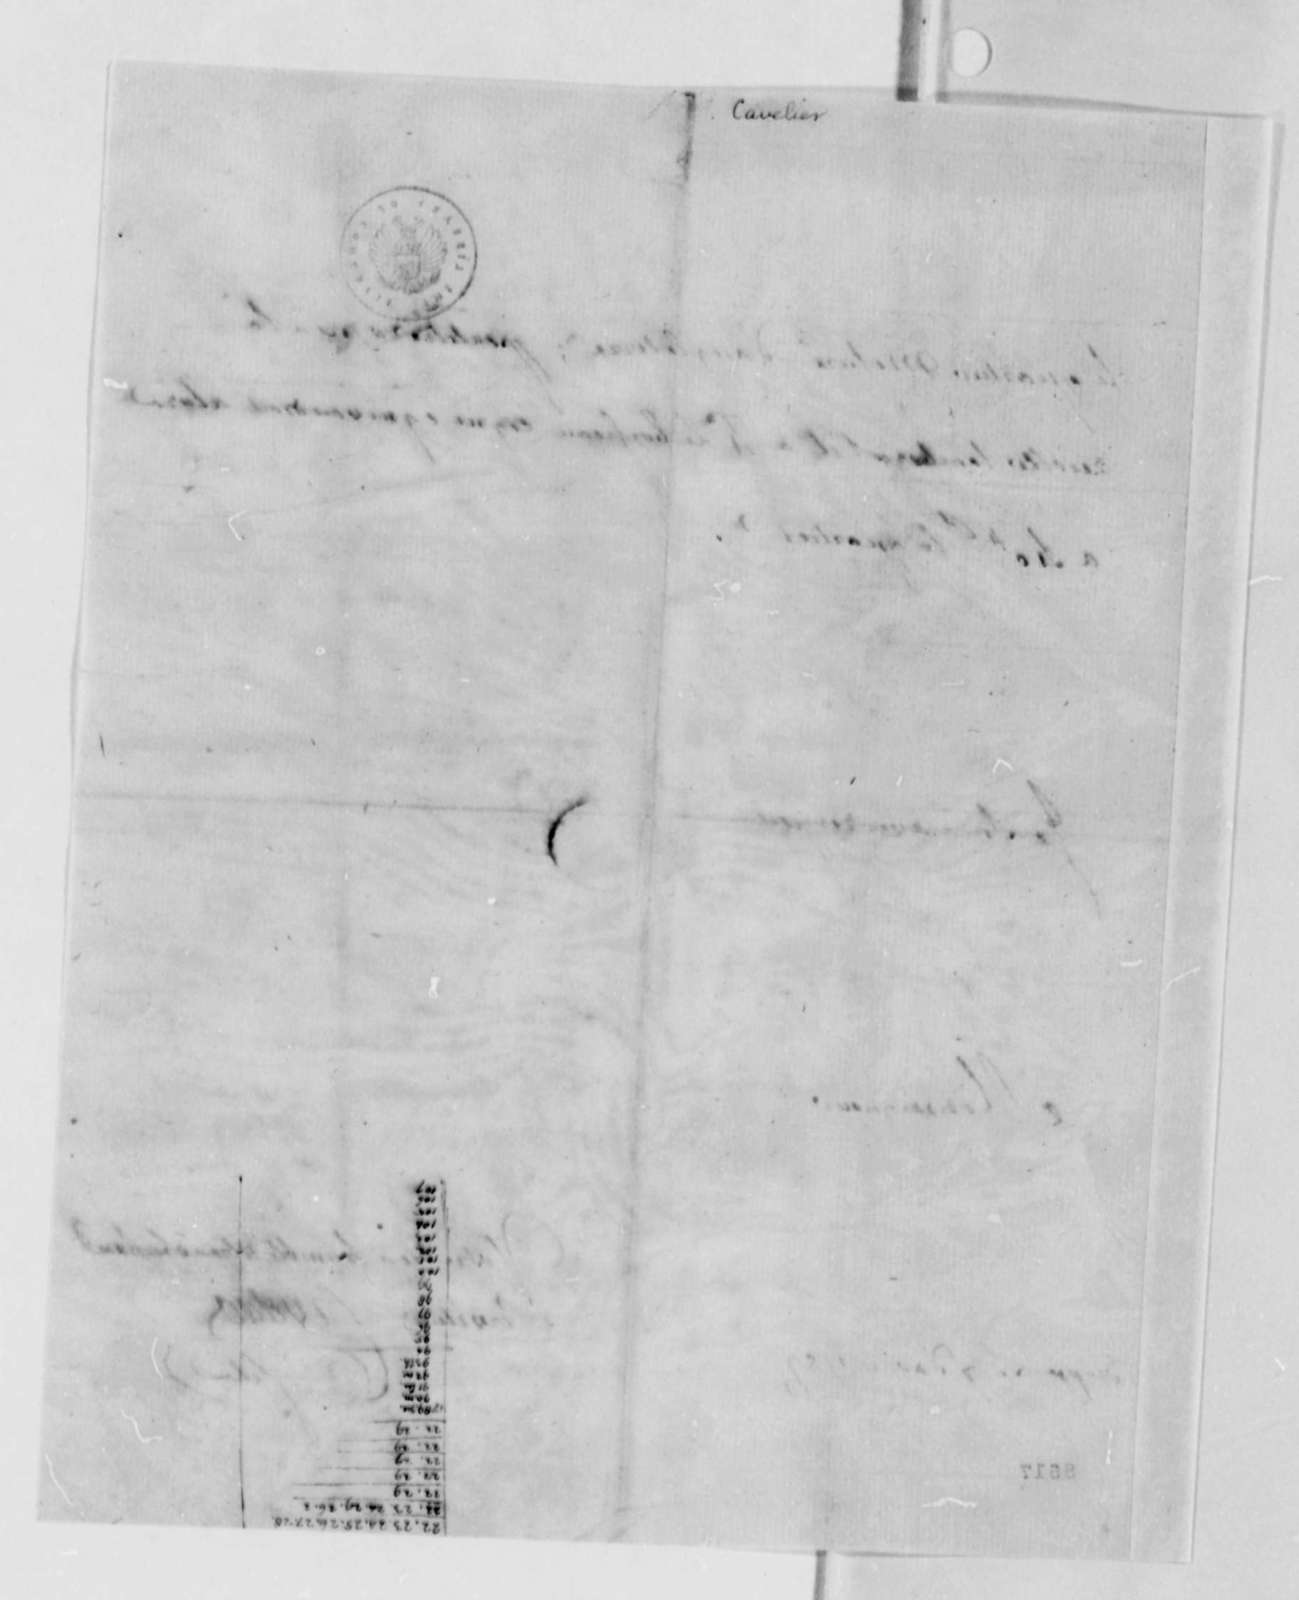 Cavelier to Thomas Jefferson, August 7, 1789